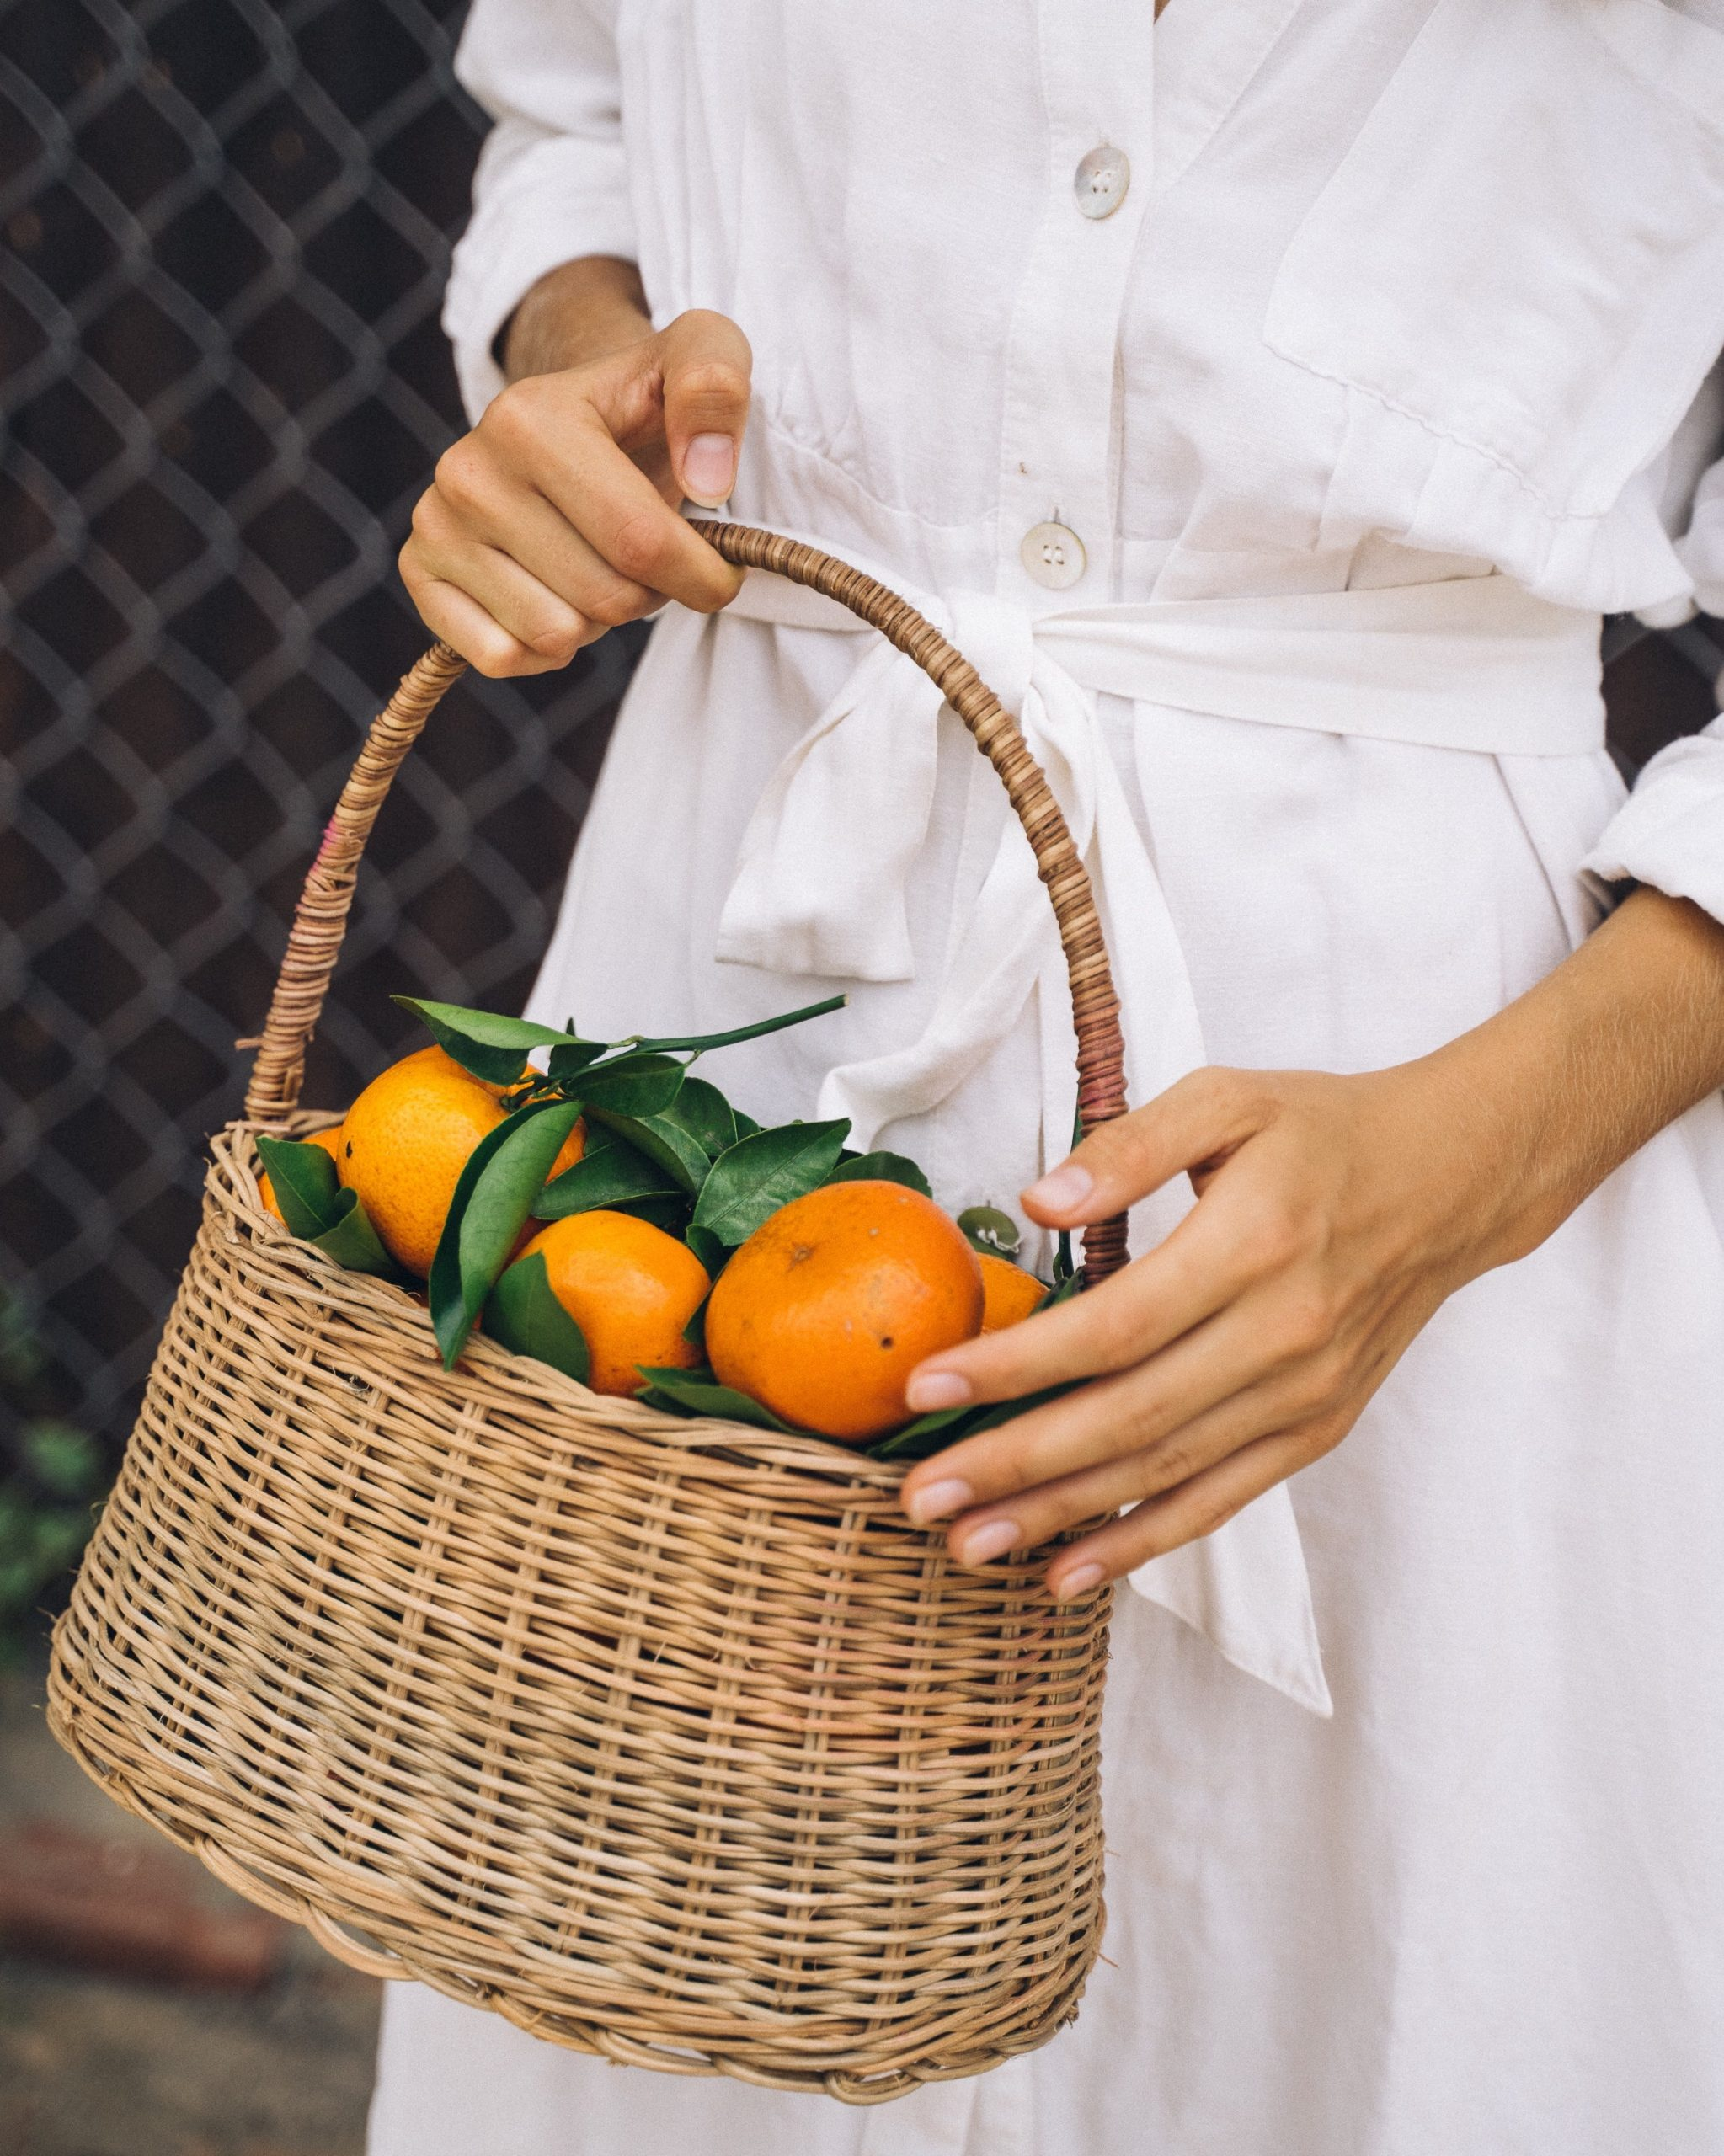 Girl in a white dress holding a basket of fruits